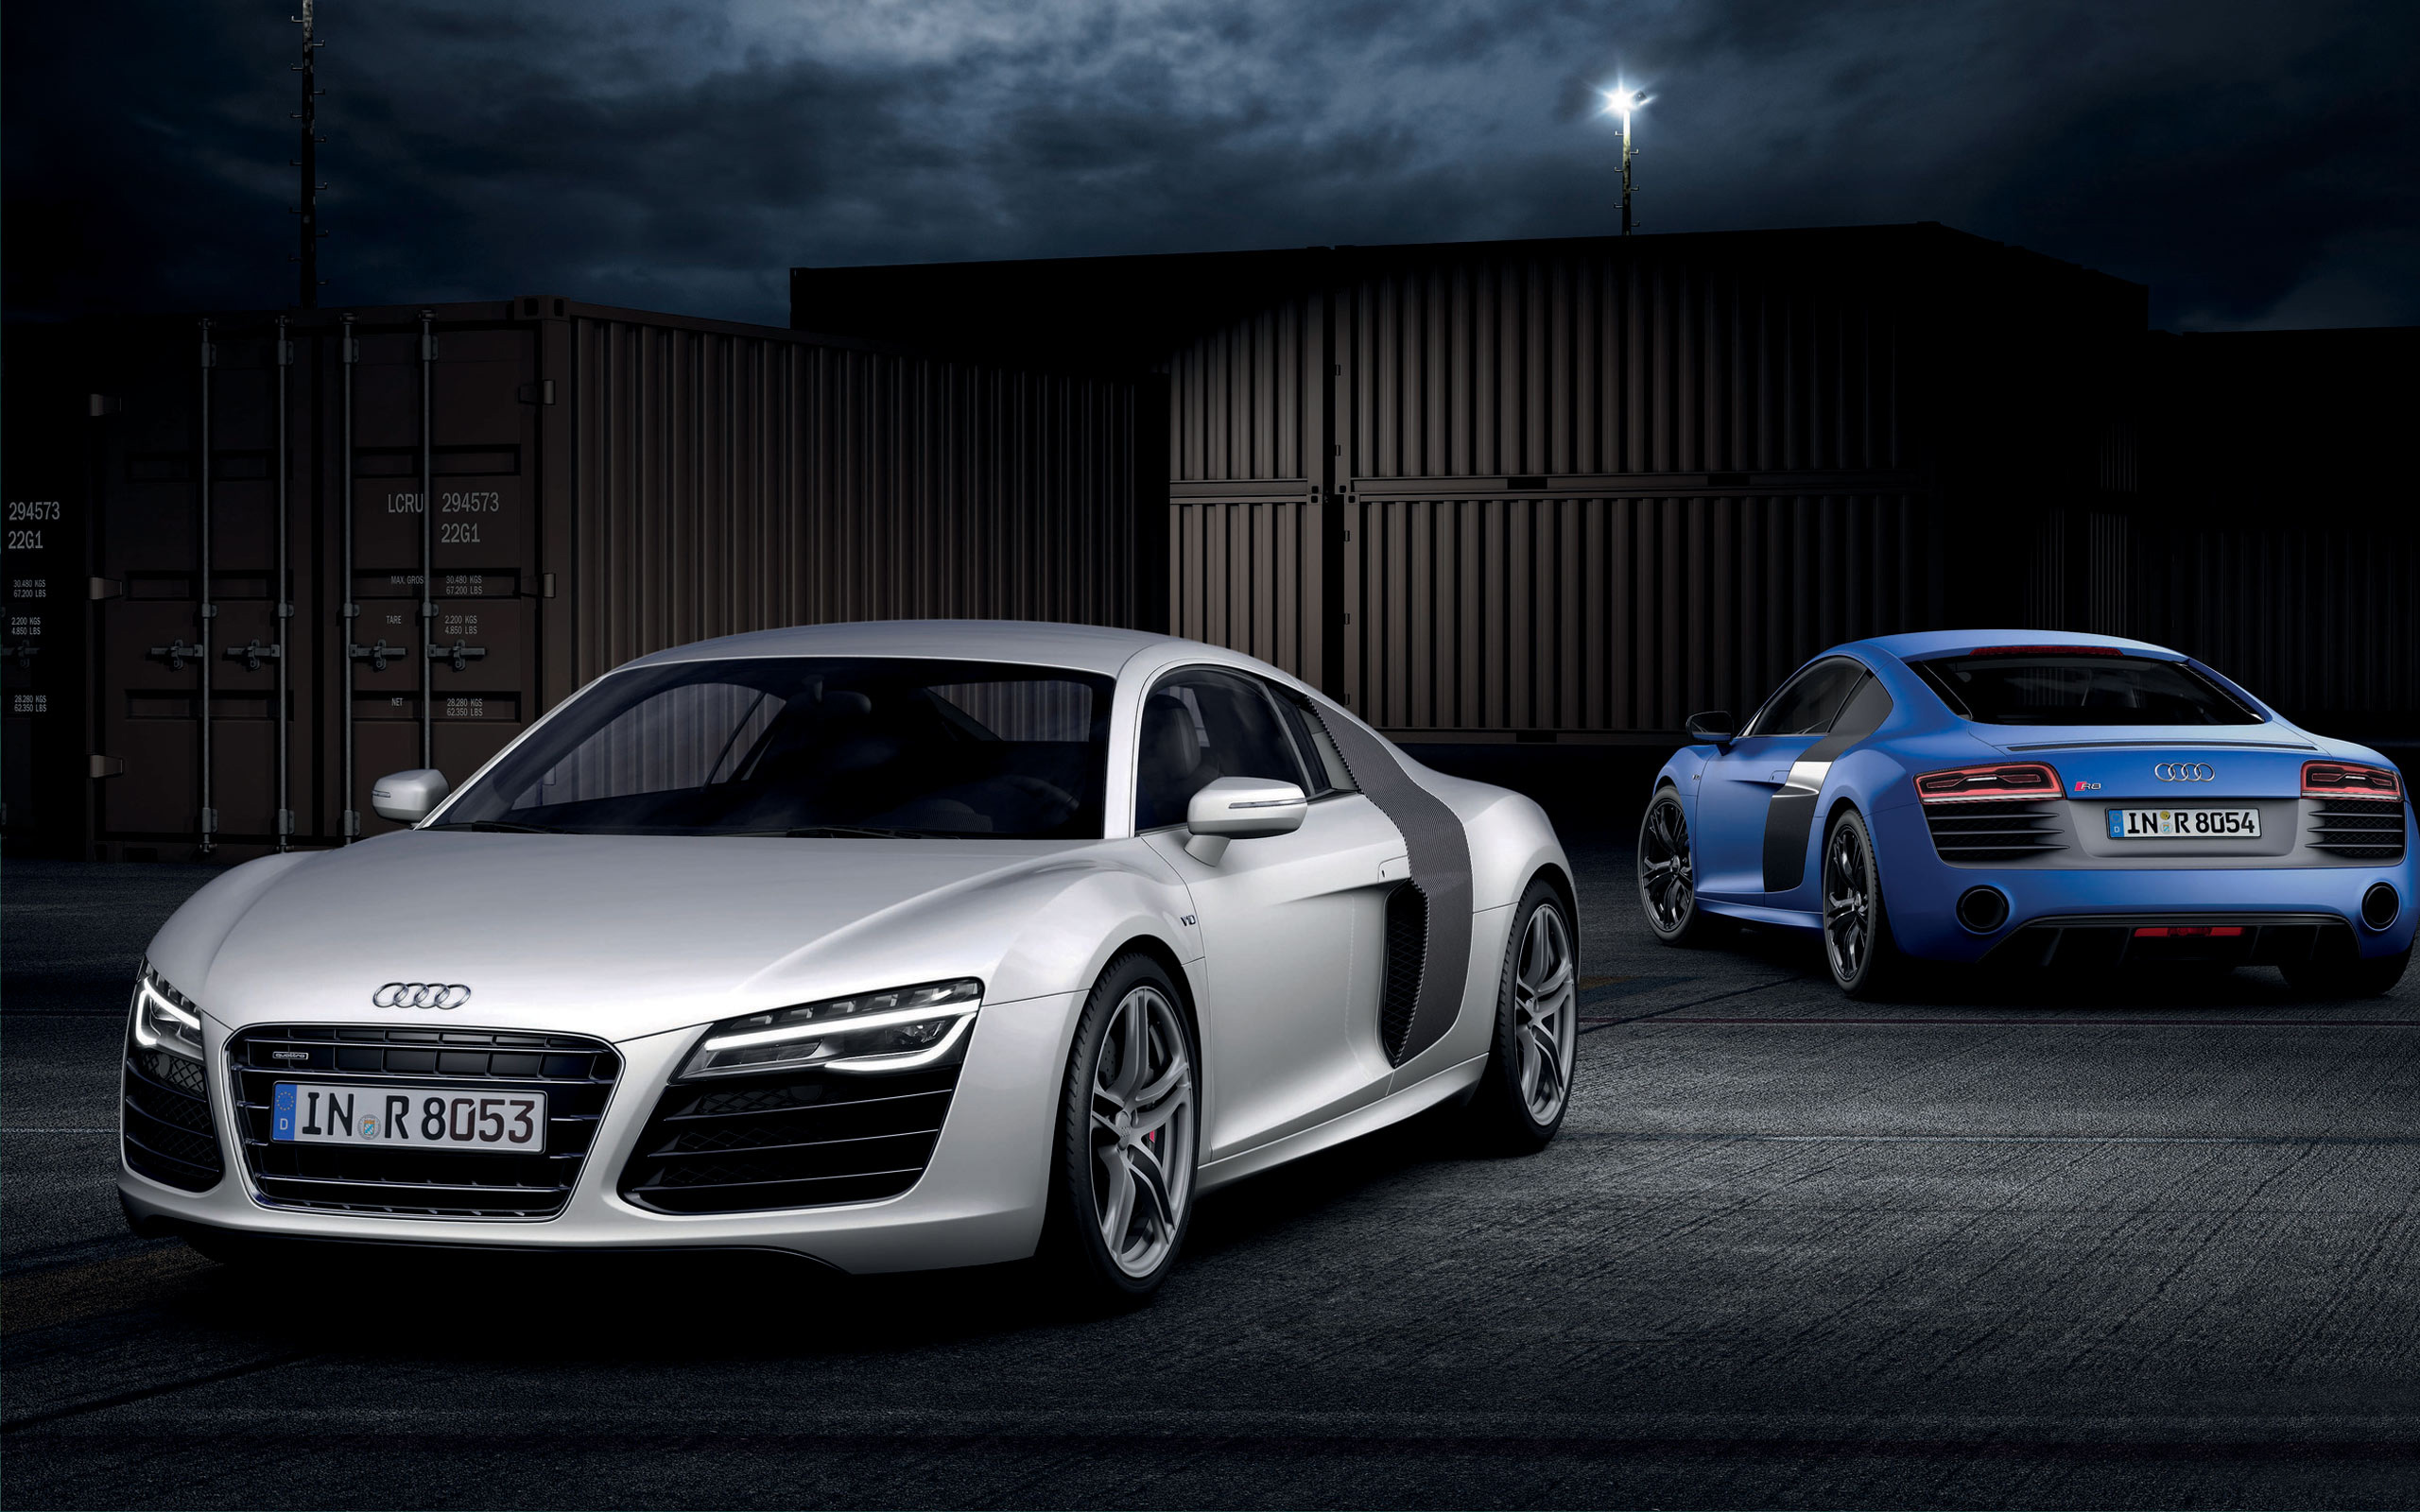 Audi R8 V10 Wallpaper - WallpaperSafari